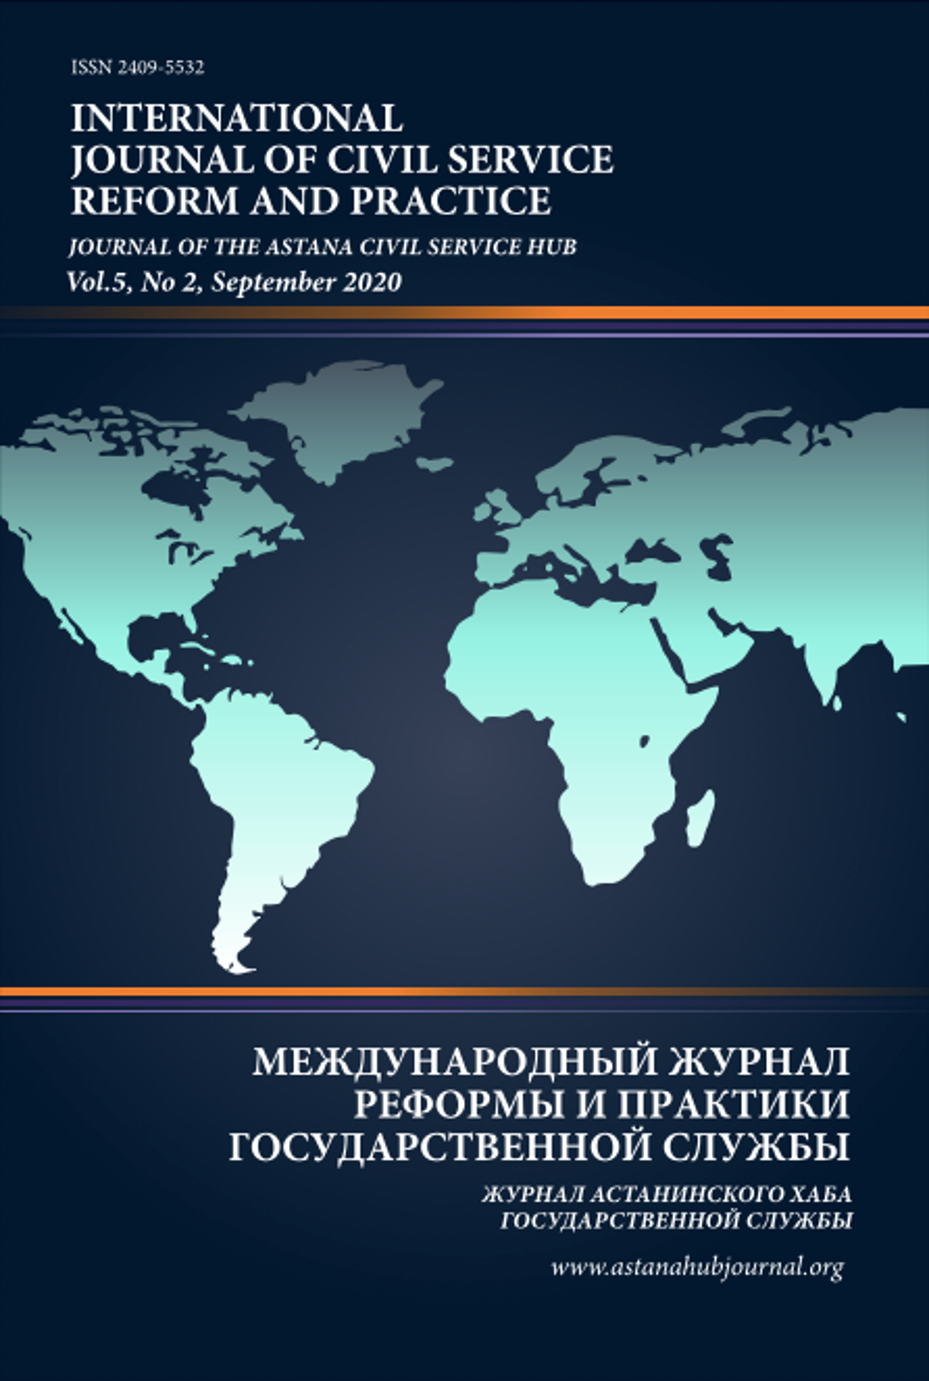 International Journal of Civil Service Reform & Practice (Vol. 5, No. 2)